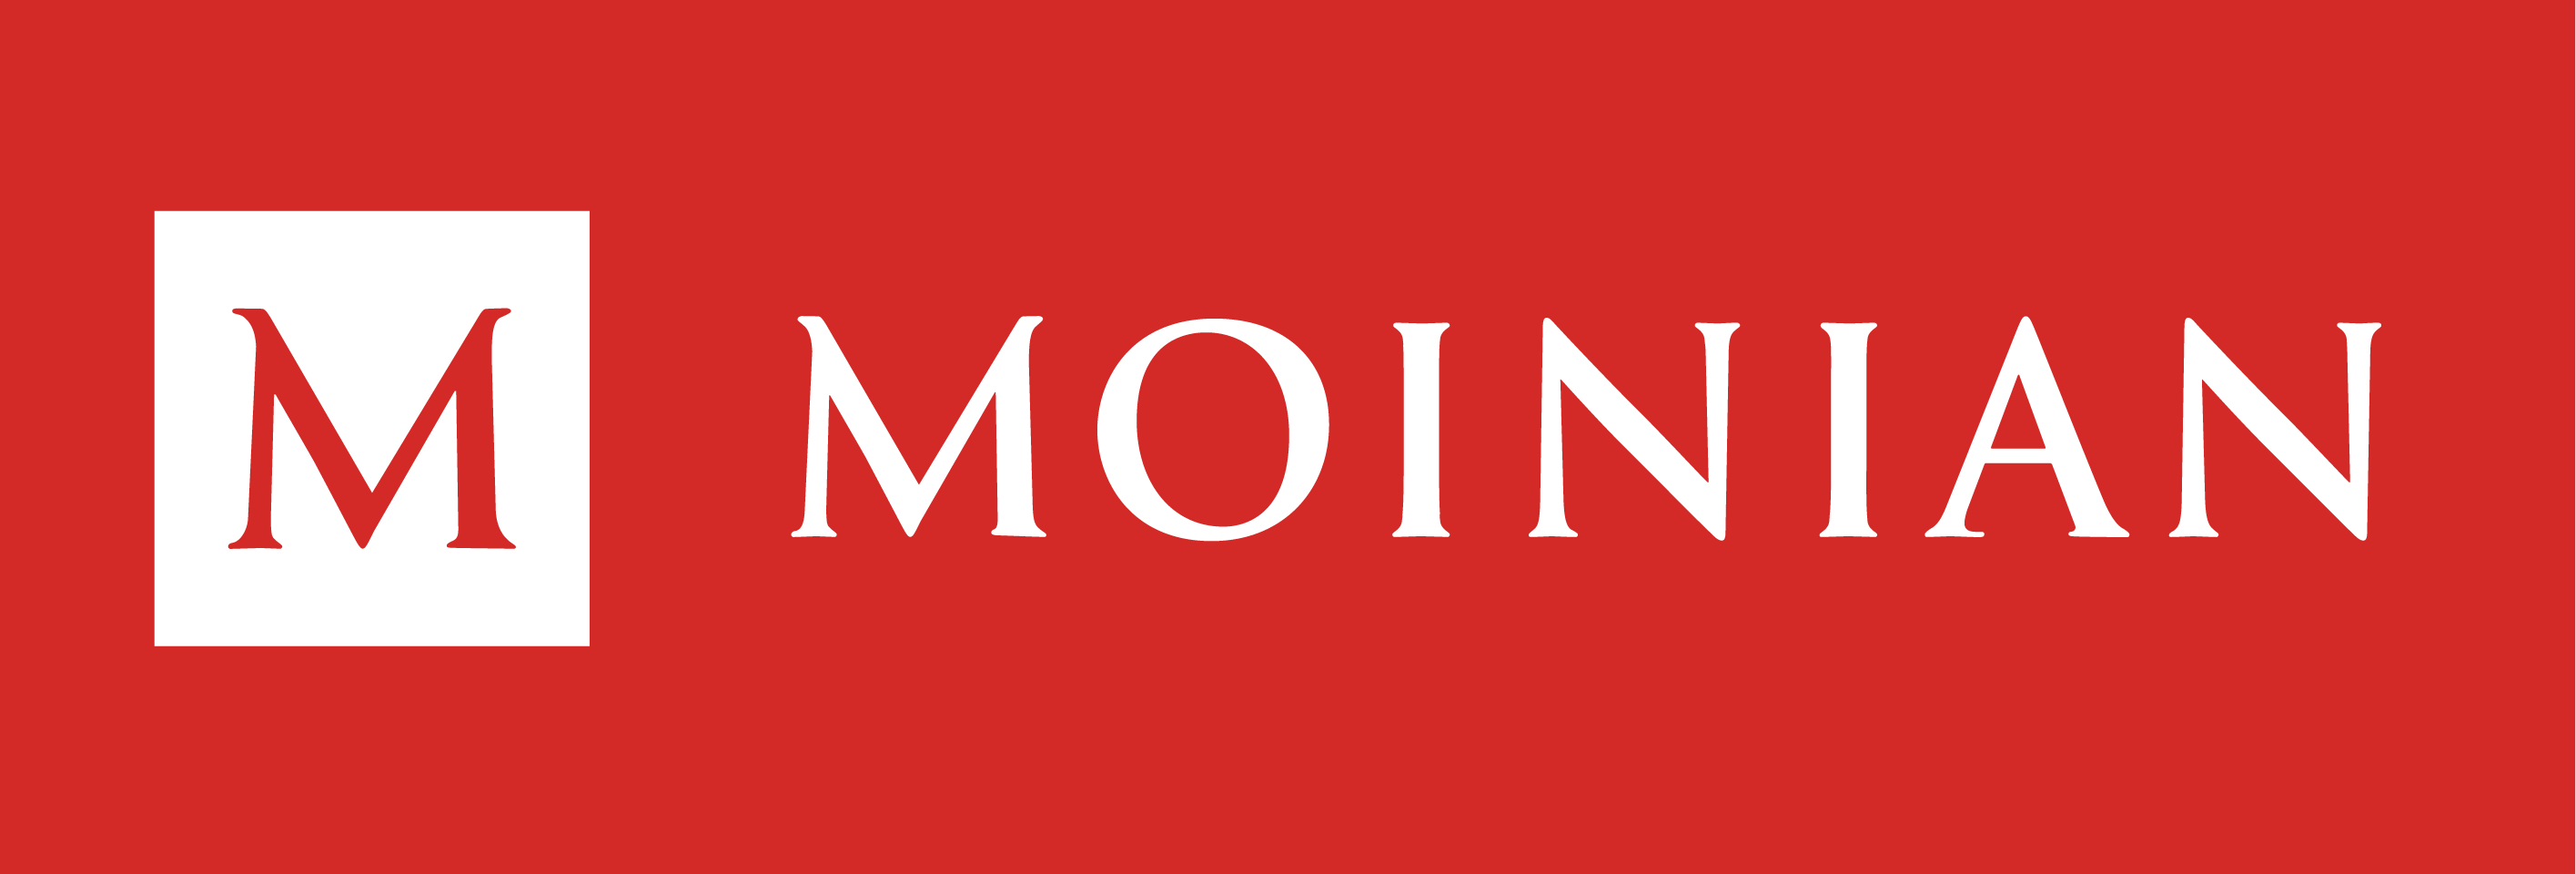 Moinian_Logo_Red_bg.png